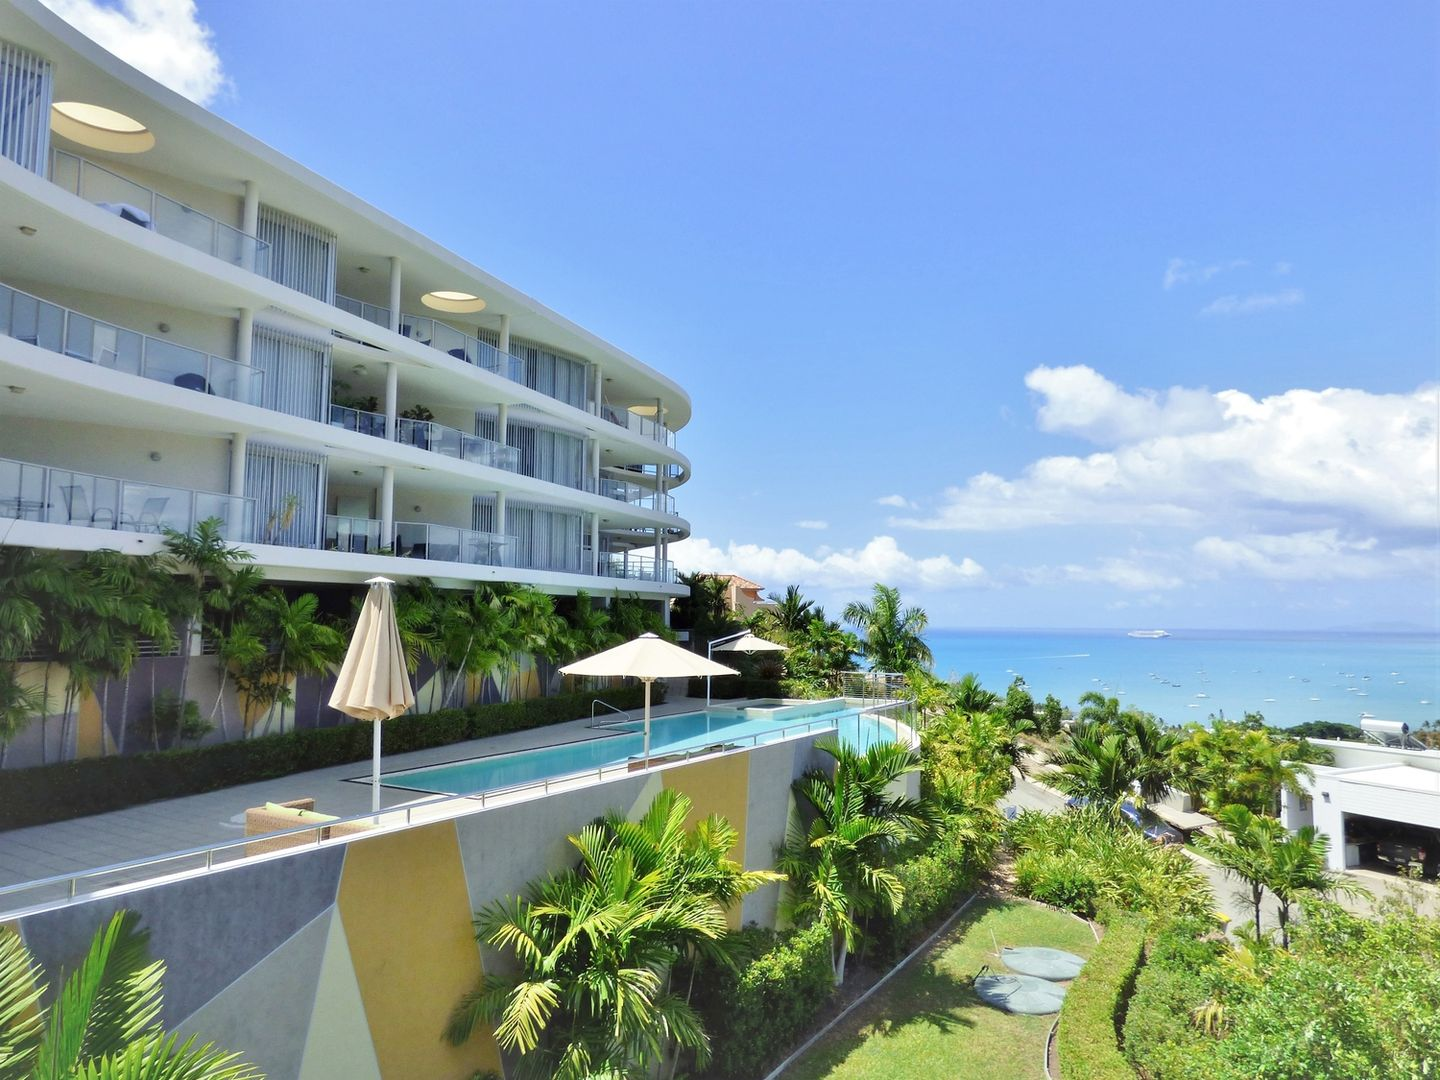 22/18 Seaview Drive, Airlie Beach QLD 4802, Image 1